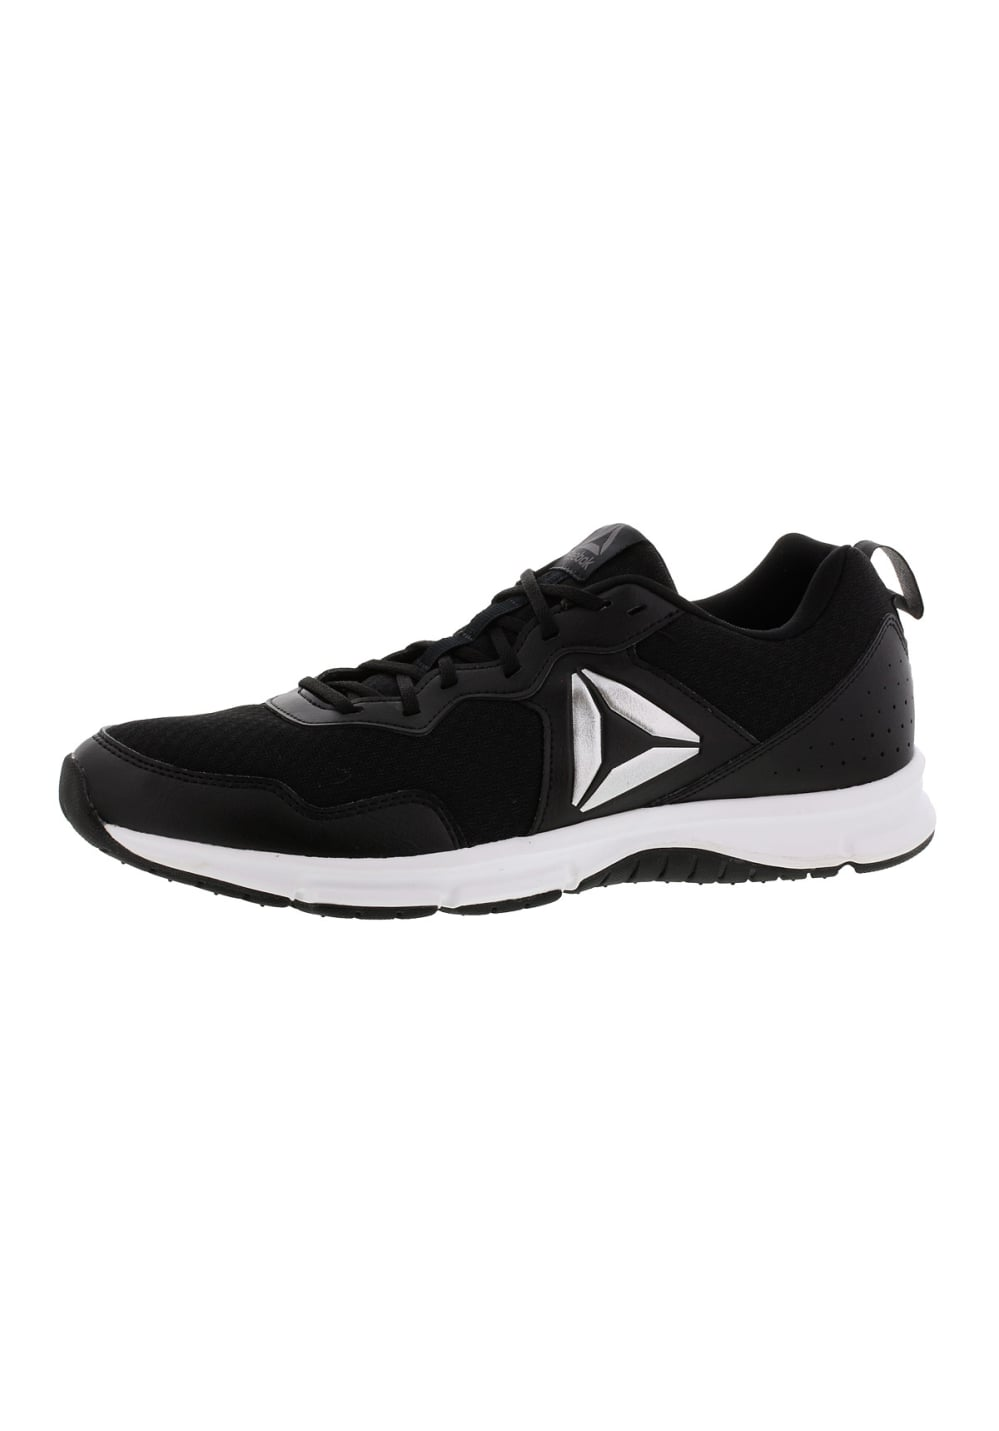 6615656a6c01b9 Next. -60%. This product is currently out of stock. Reebok. Express Runner  2.0 - Running shoes for Men